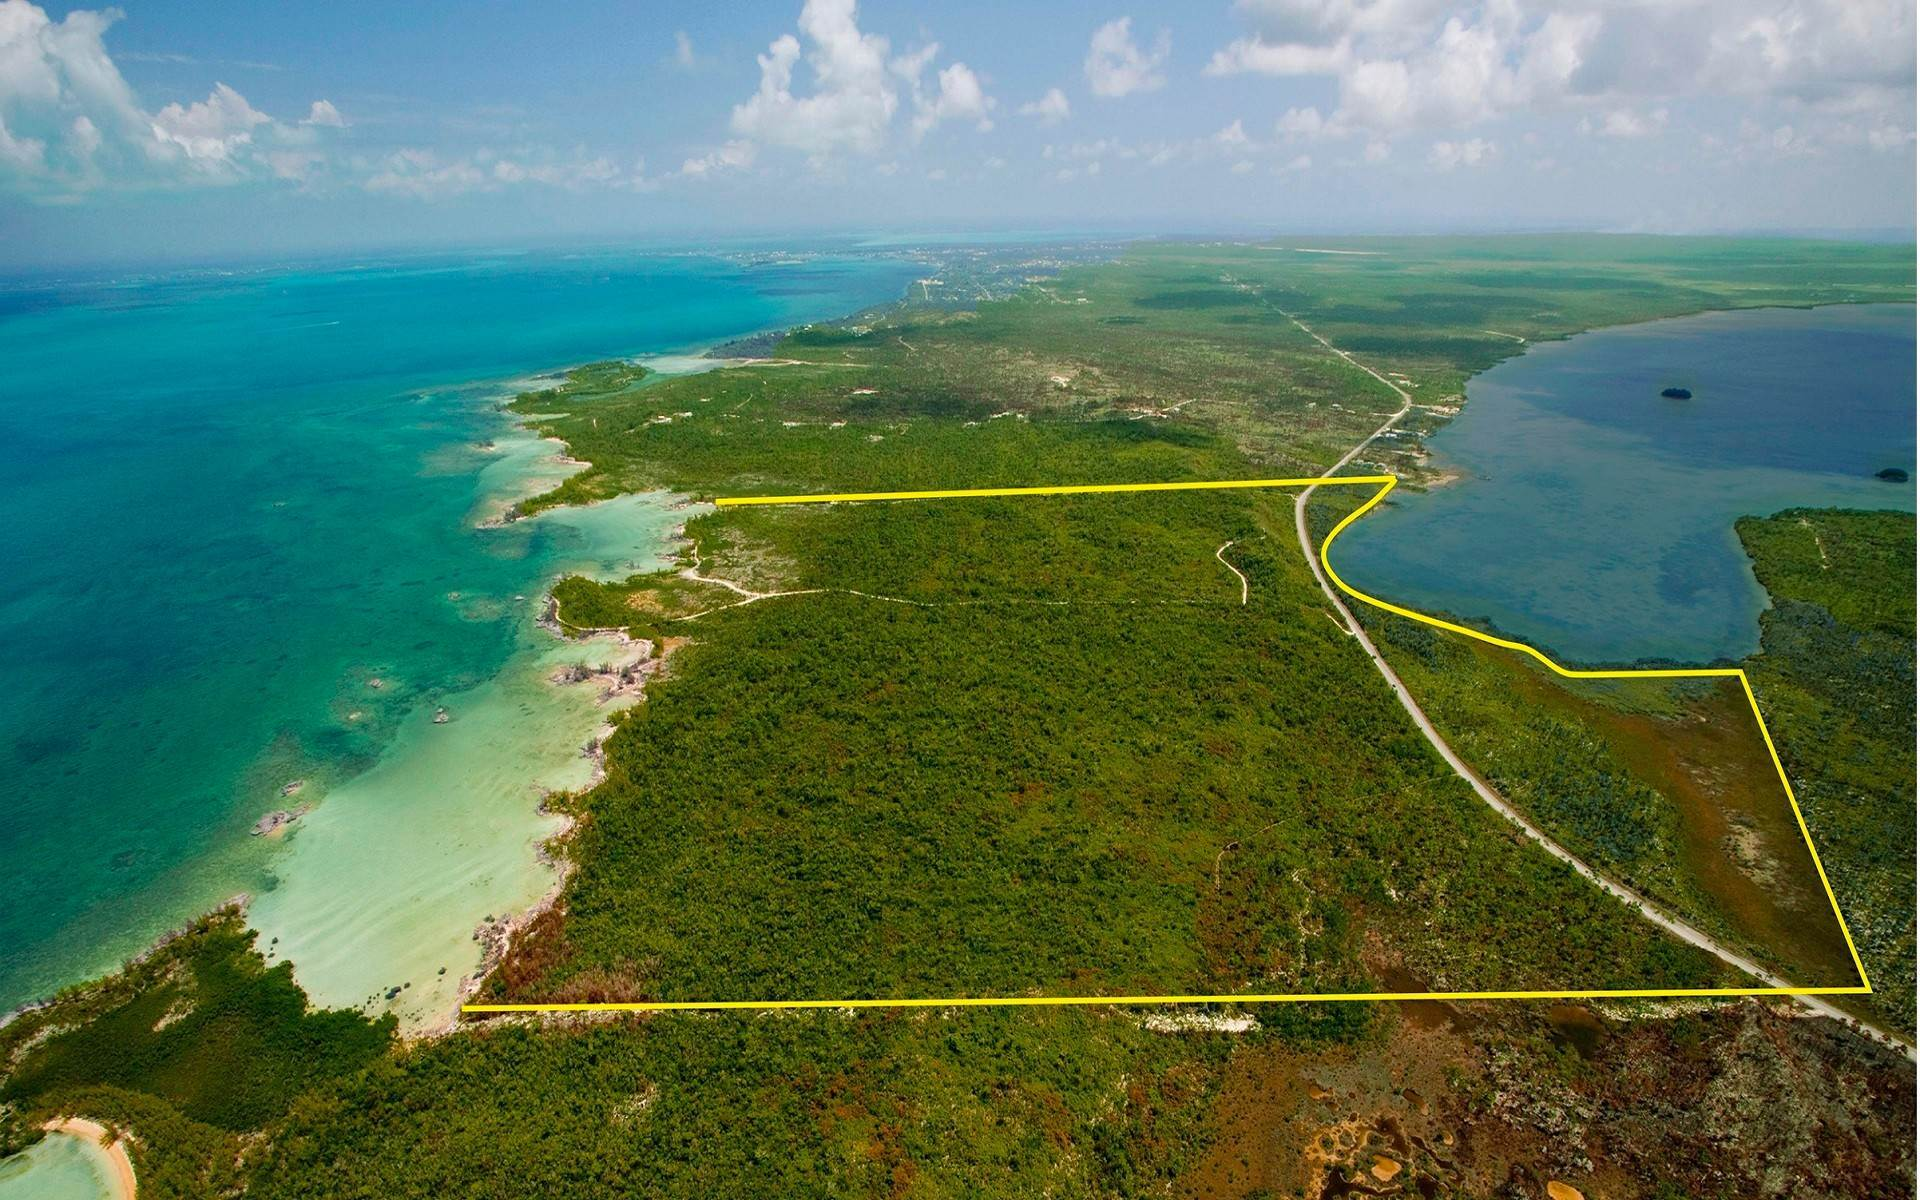 Land/Lot for Sale at Summit Point Tract , A sea to Sea Development opportunity - MLS 41711 Abaco, Bahamas